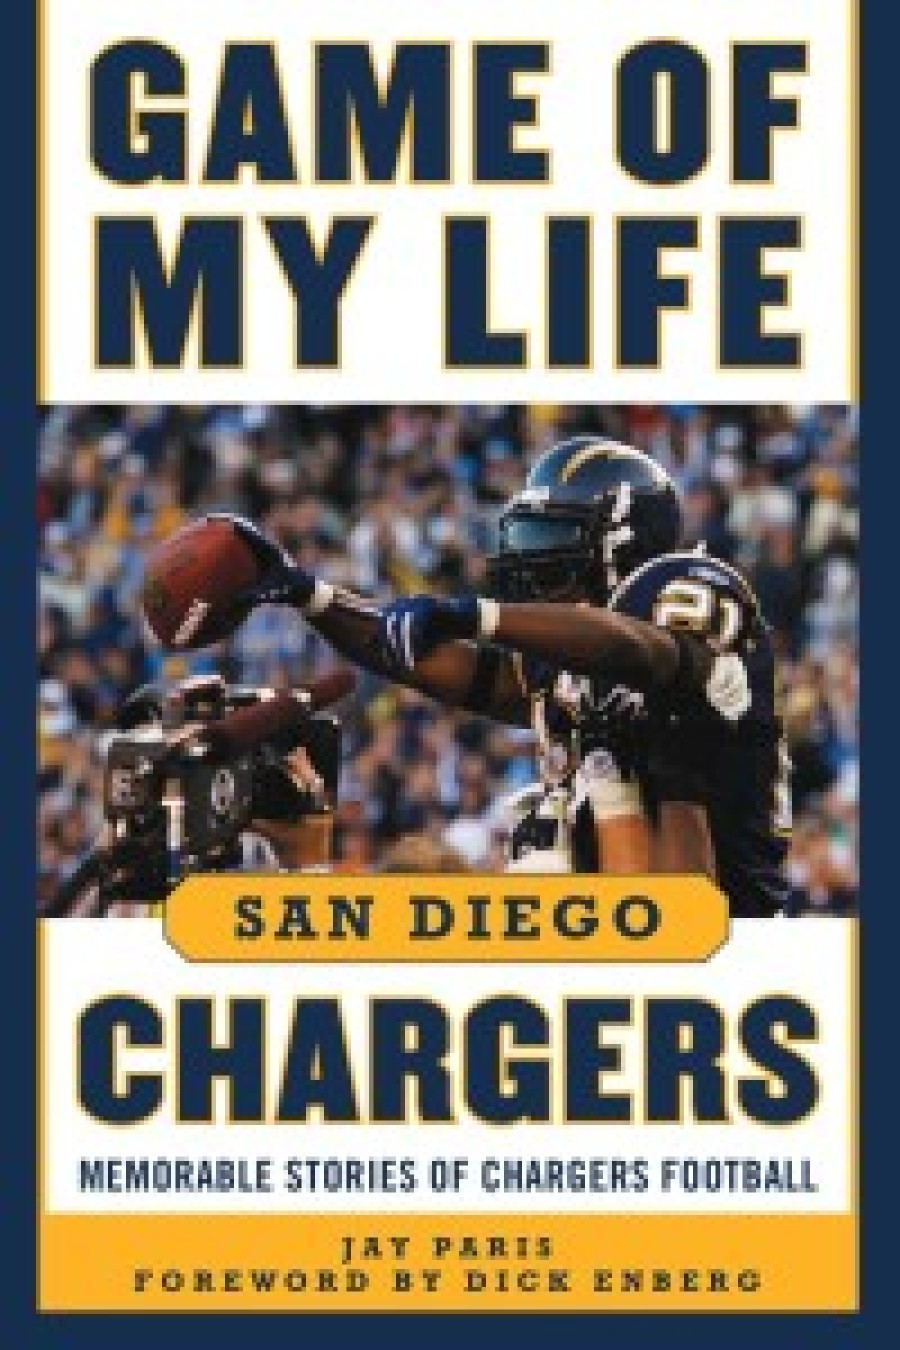 Book takes readers into the locker room of Chargers' greats